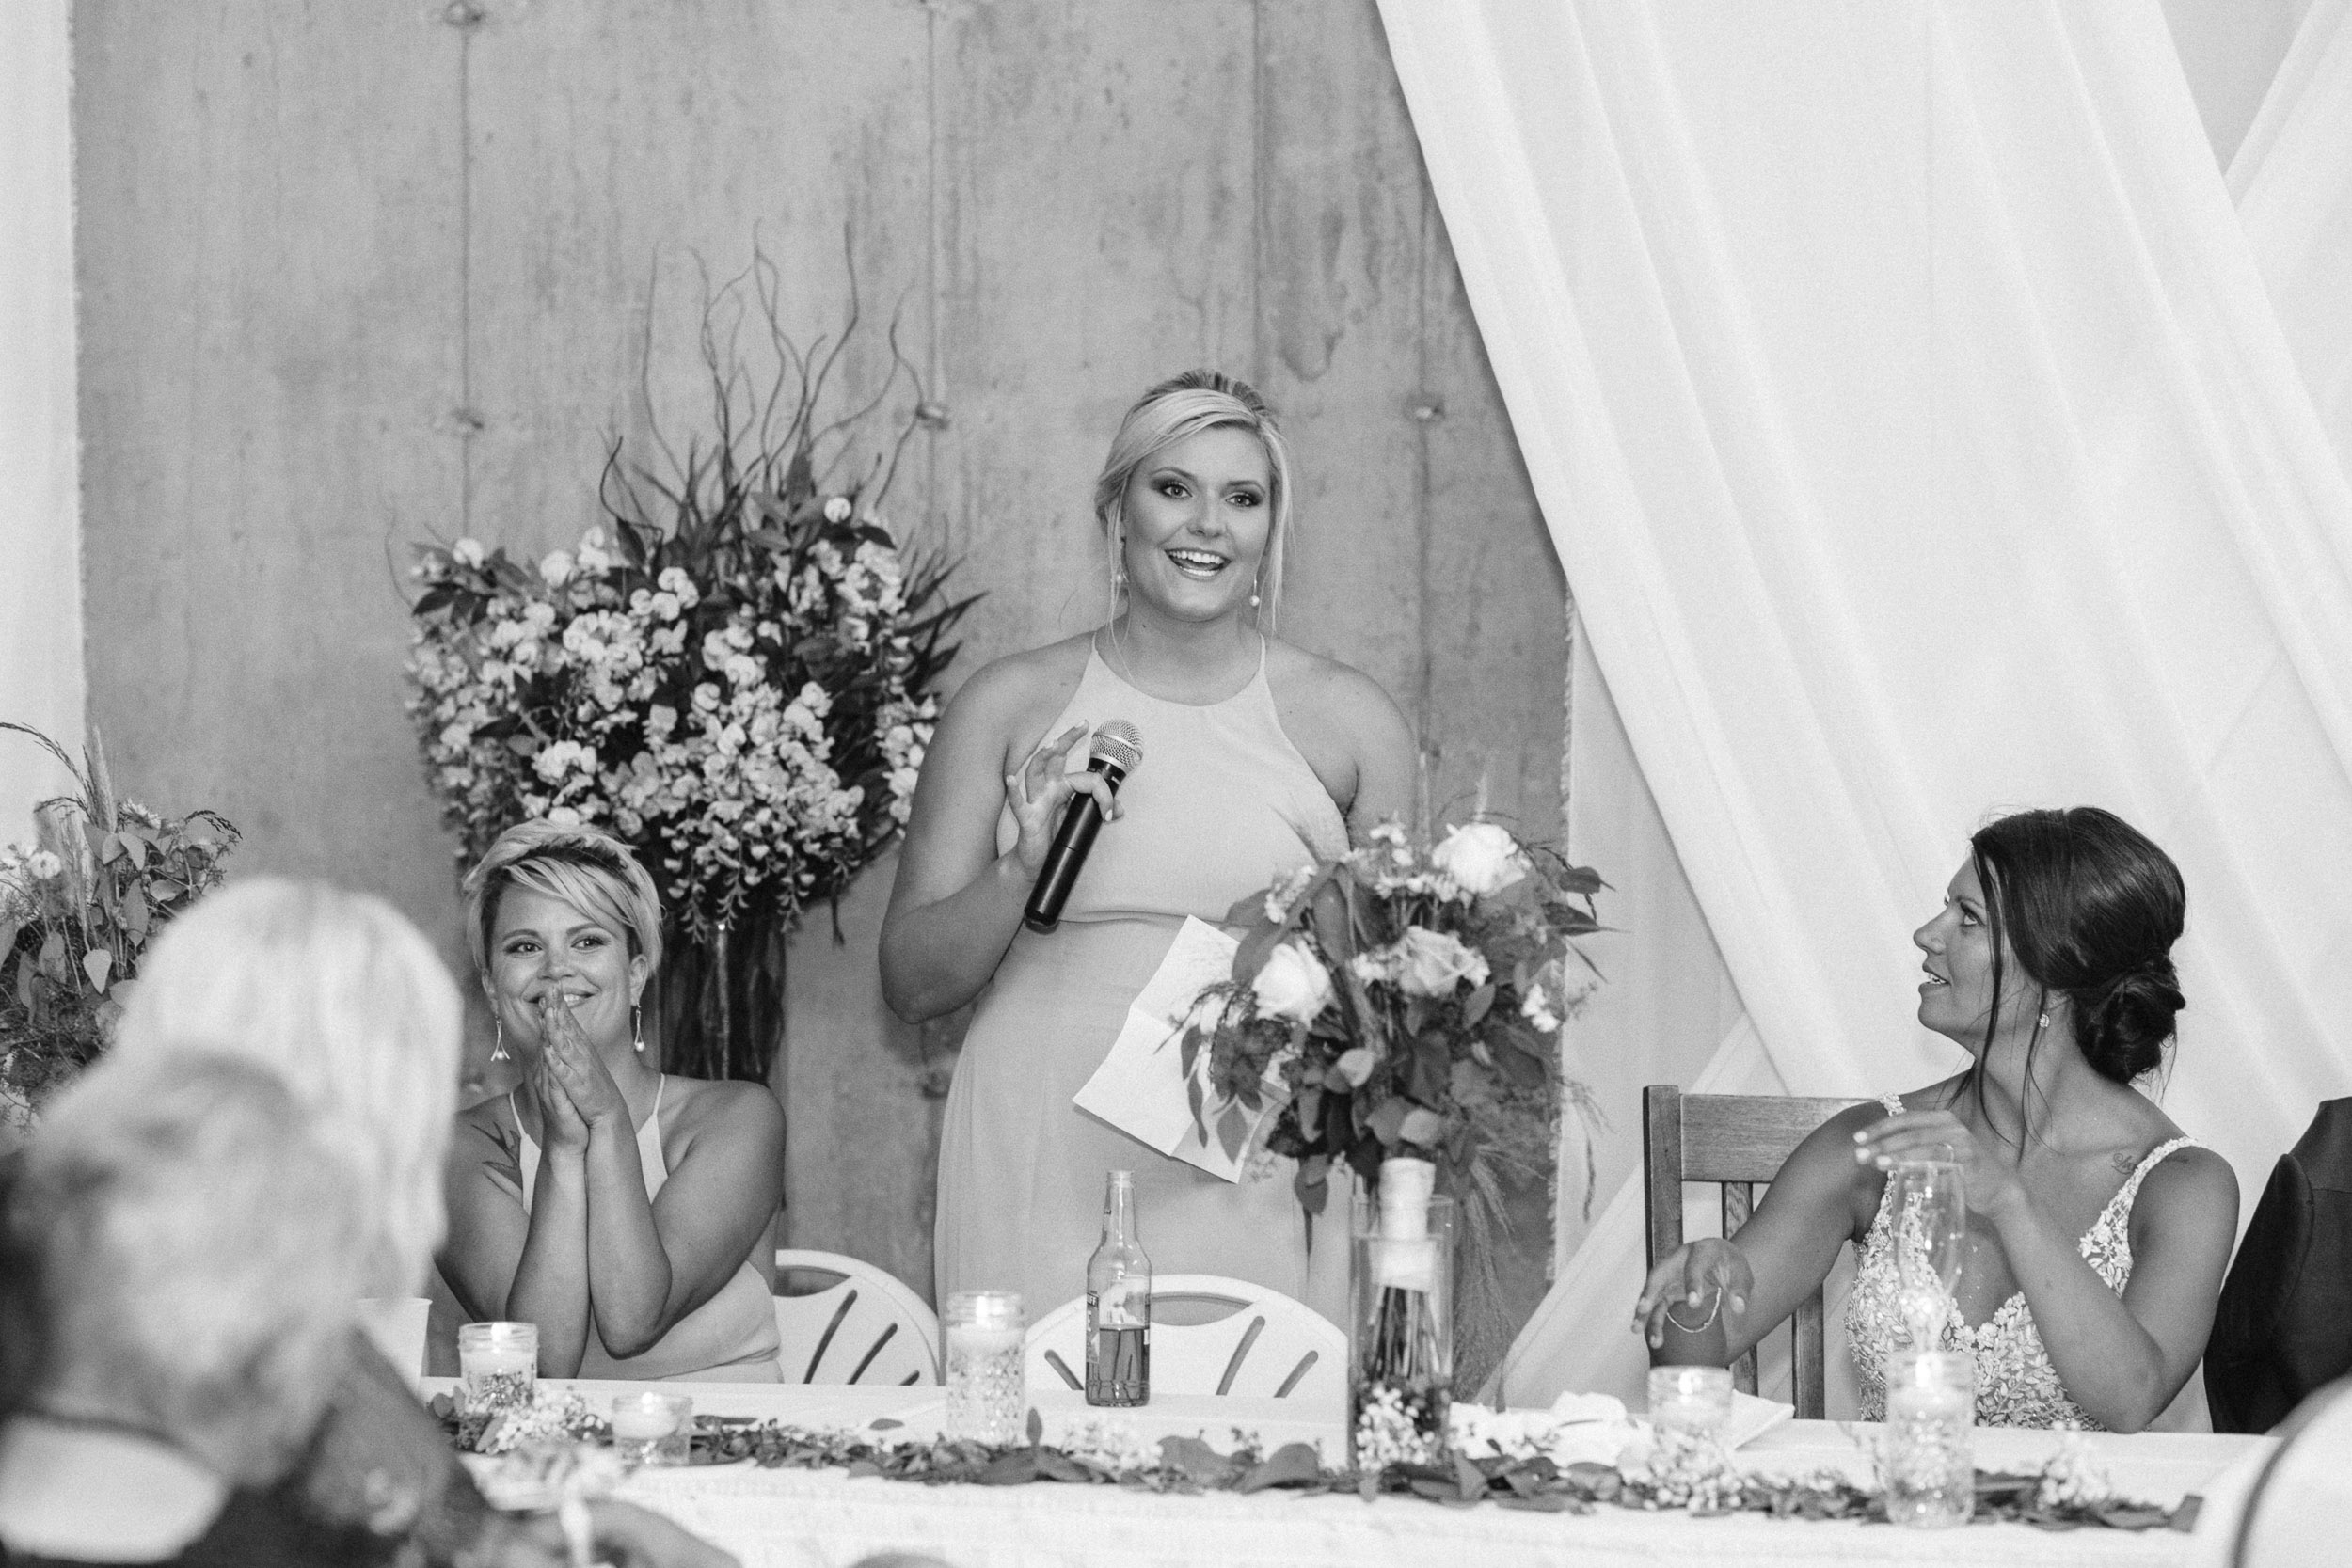 Maid of honor giving speech